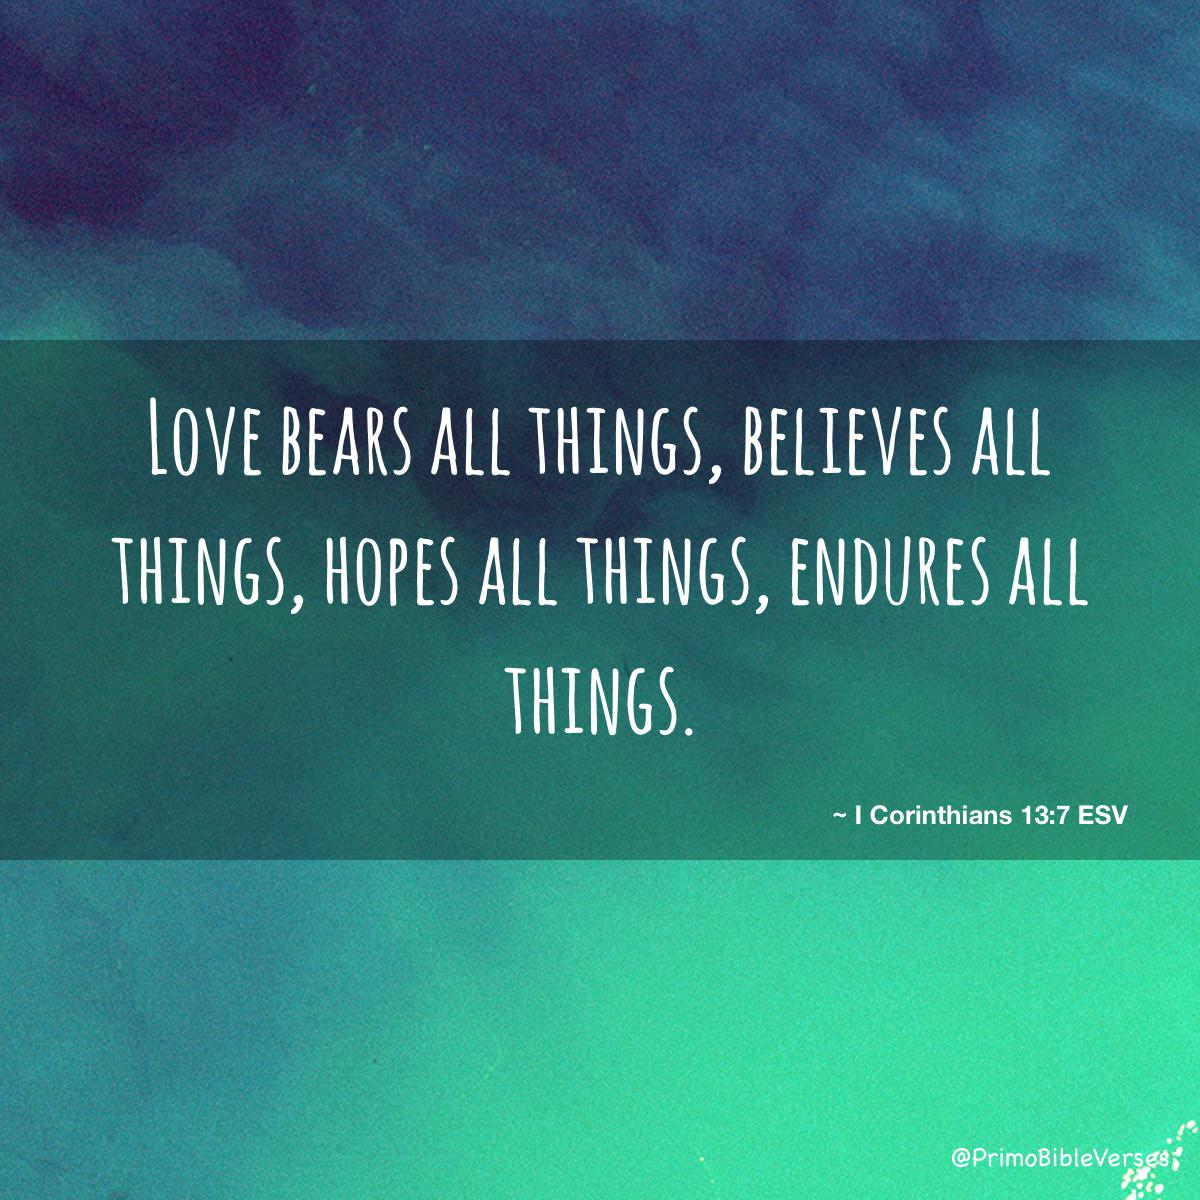 Love Bears All Things Believes All Things Hopes All Things Endures All Things